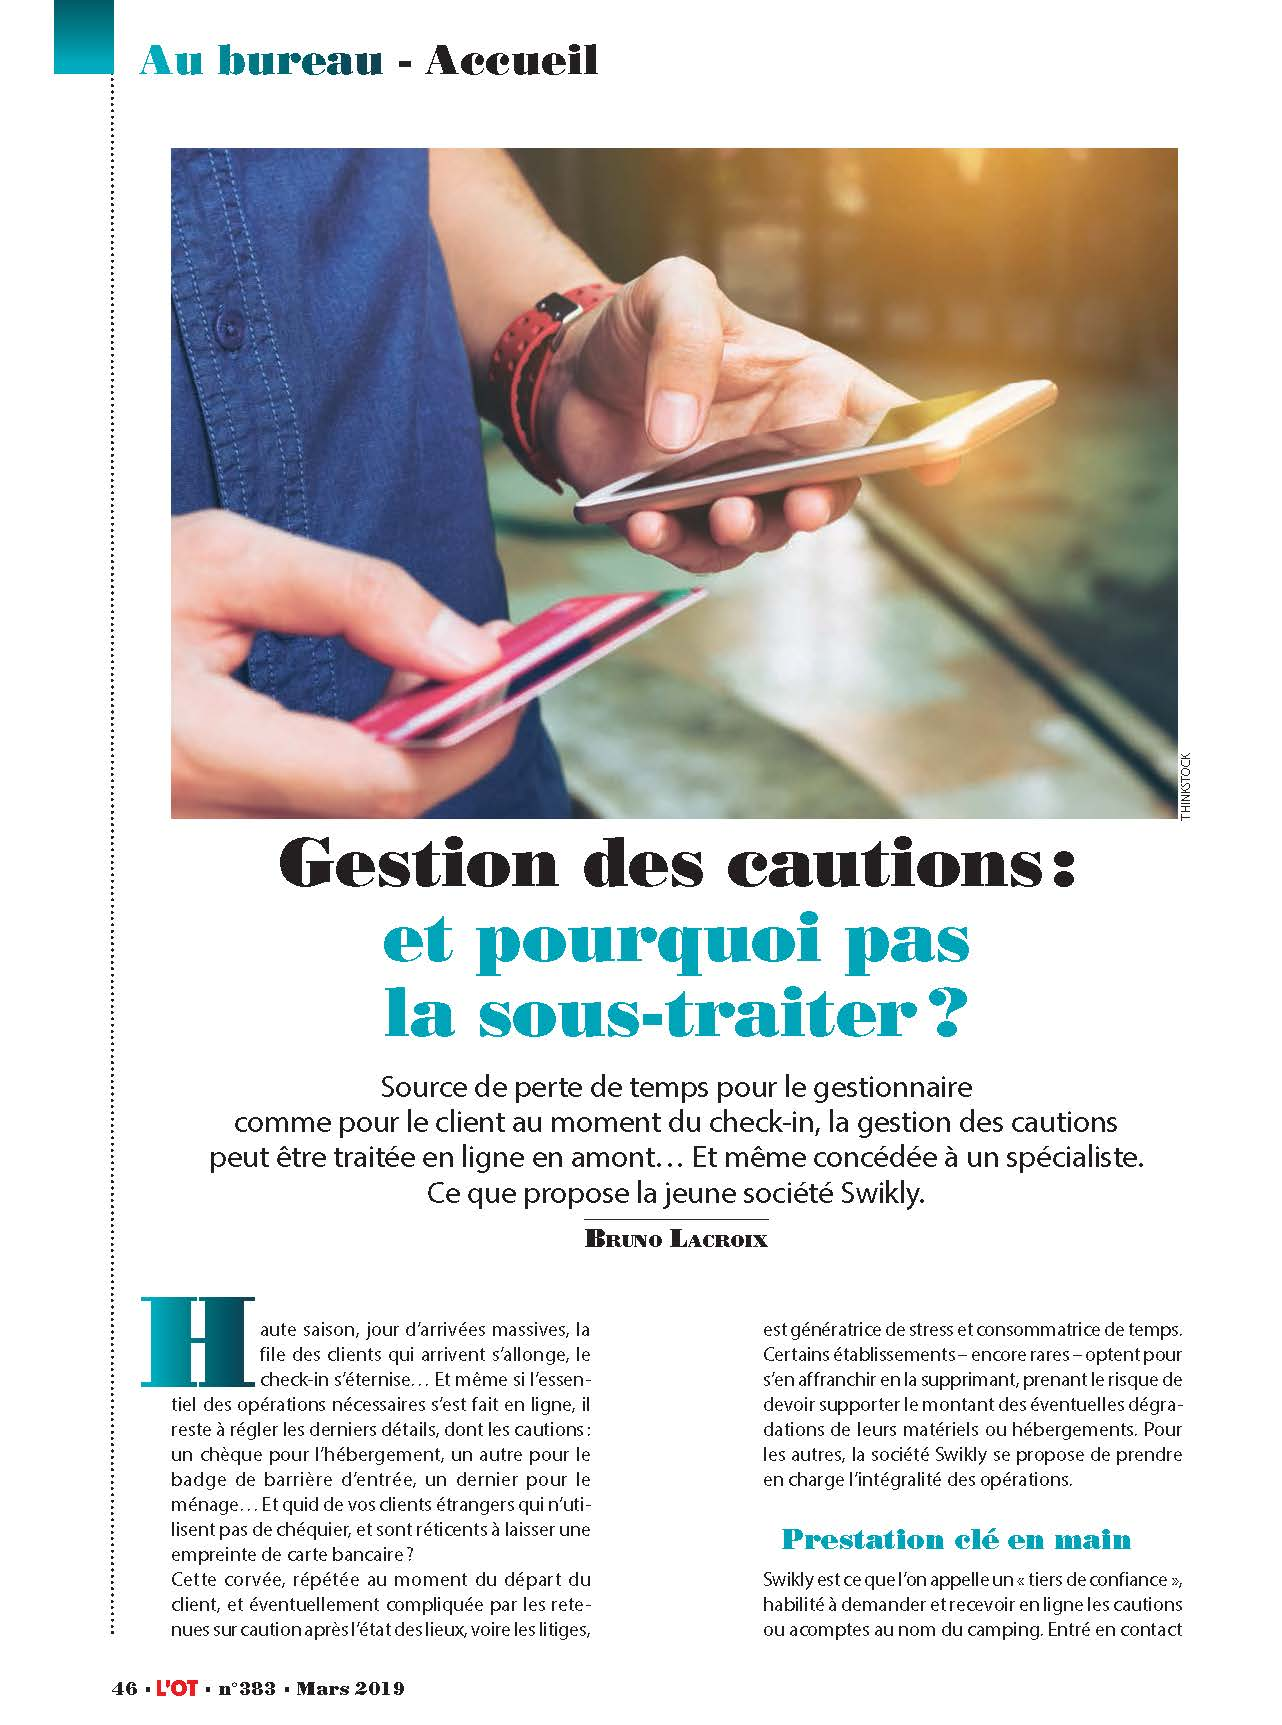 Gestion des cautions